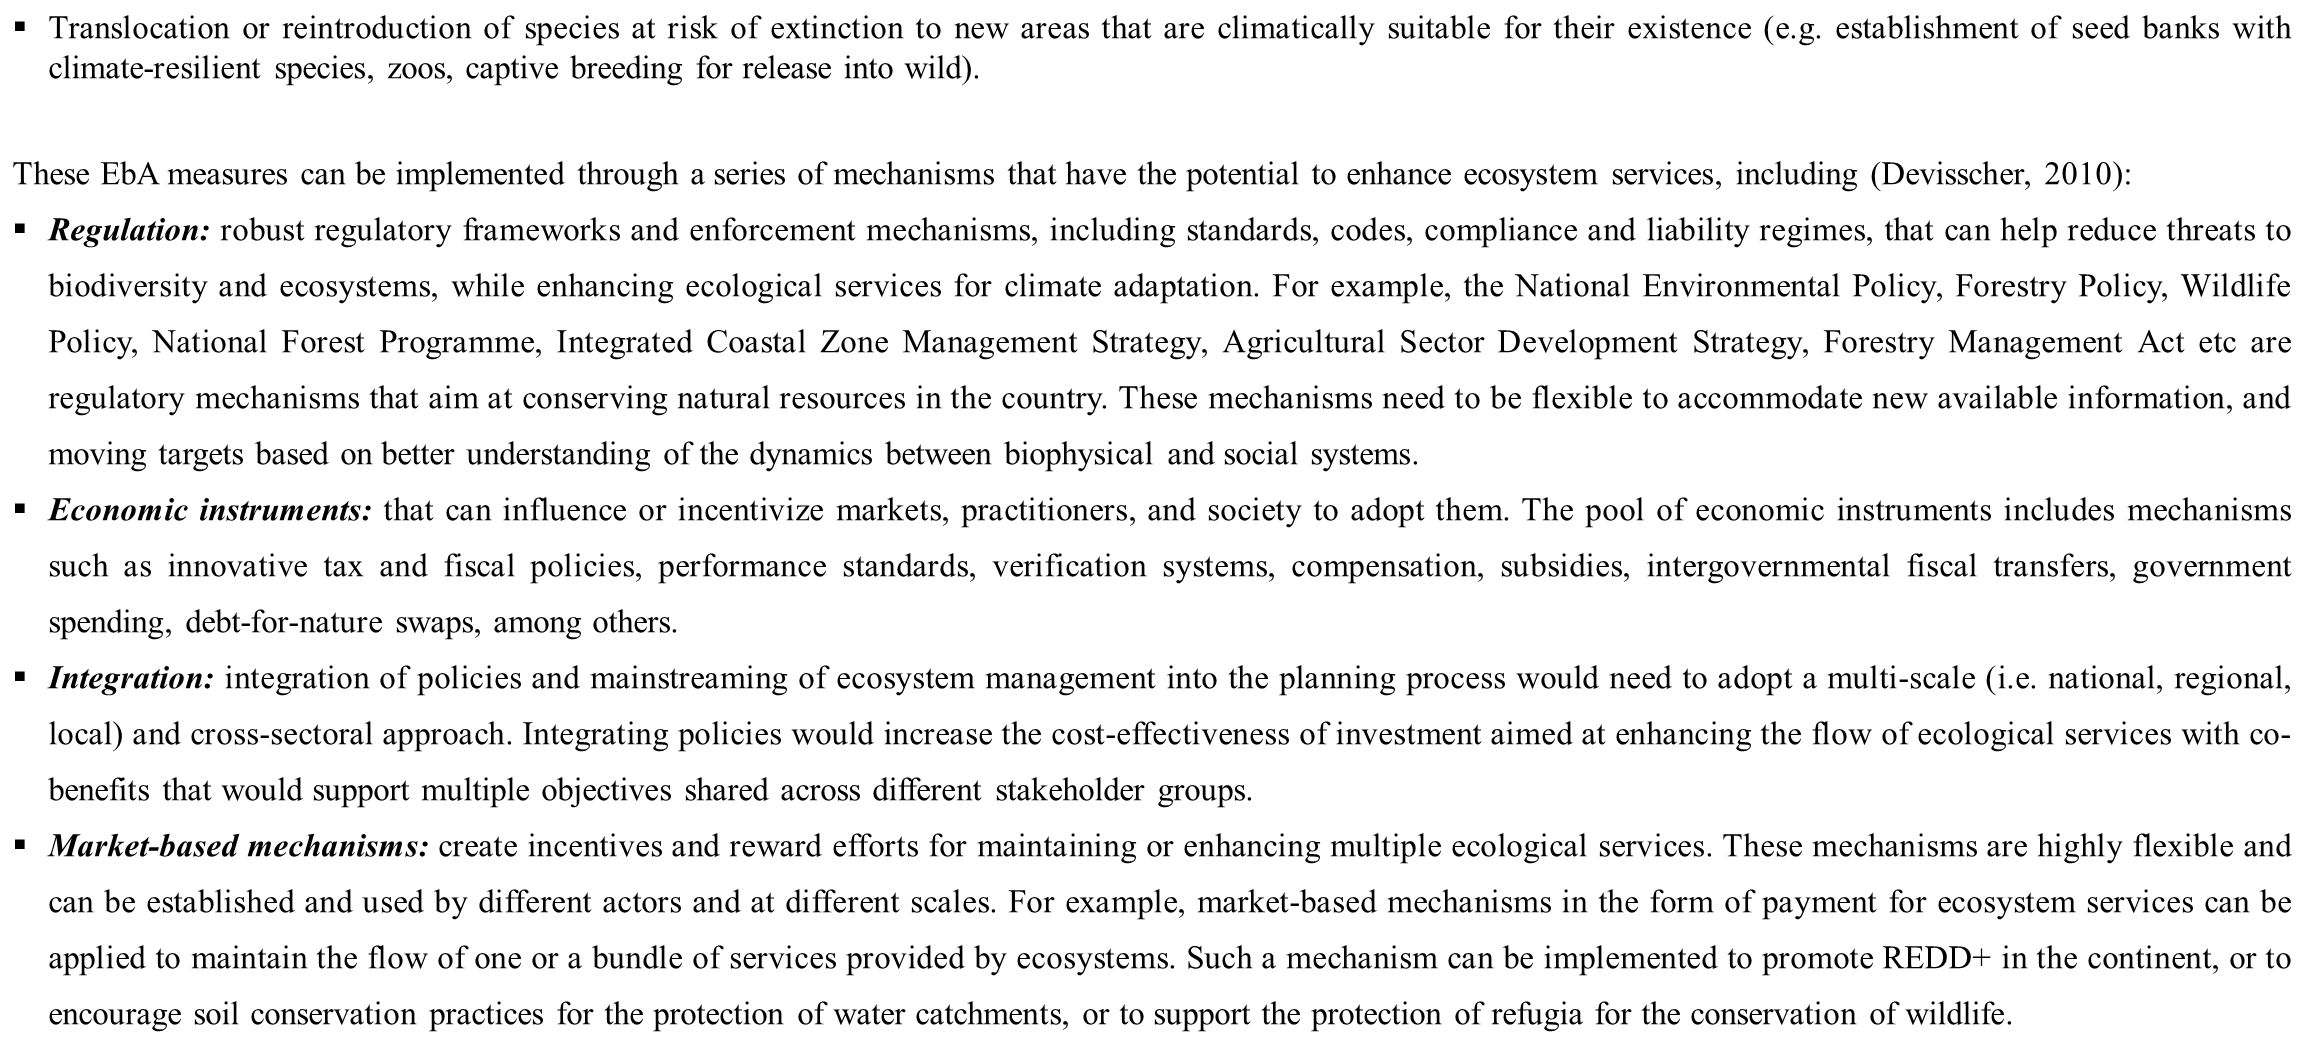 Translocation or reintroduction of species at risk of extinction to new areas that are climatically suitable for their existence (e.g. establishment of seed banks with climate-resilient species, zoos, captive breeding for release into wild).